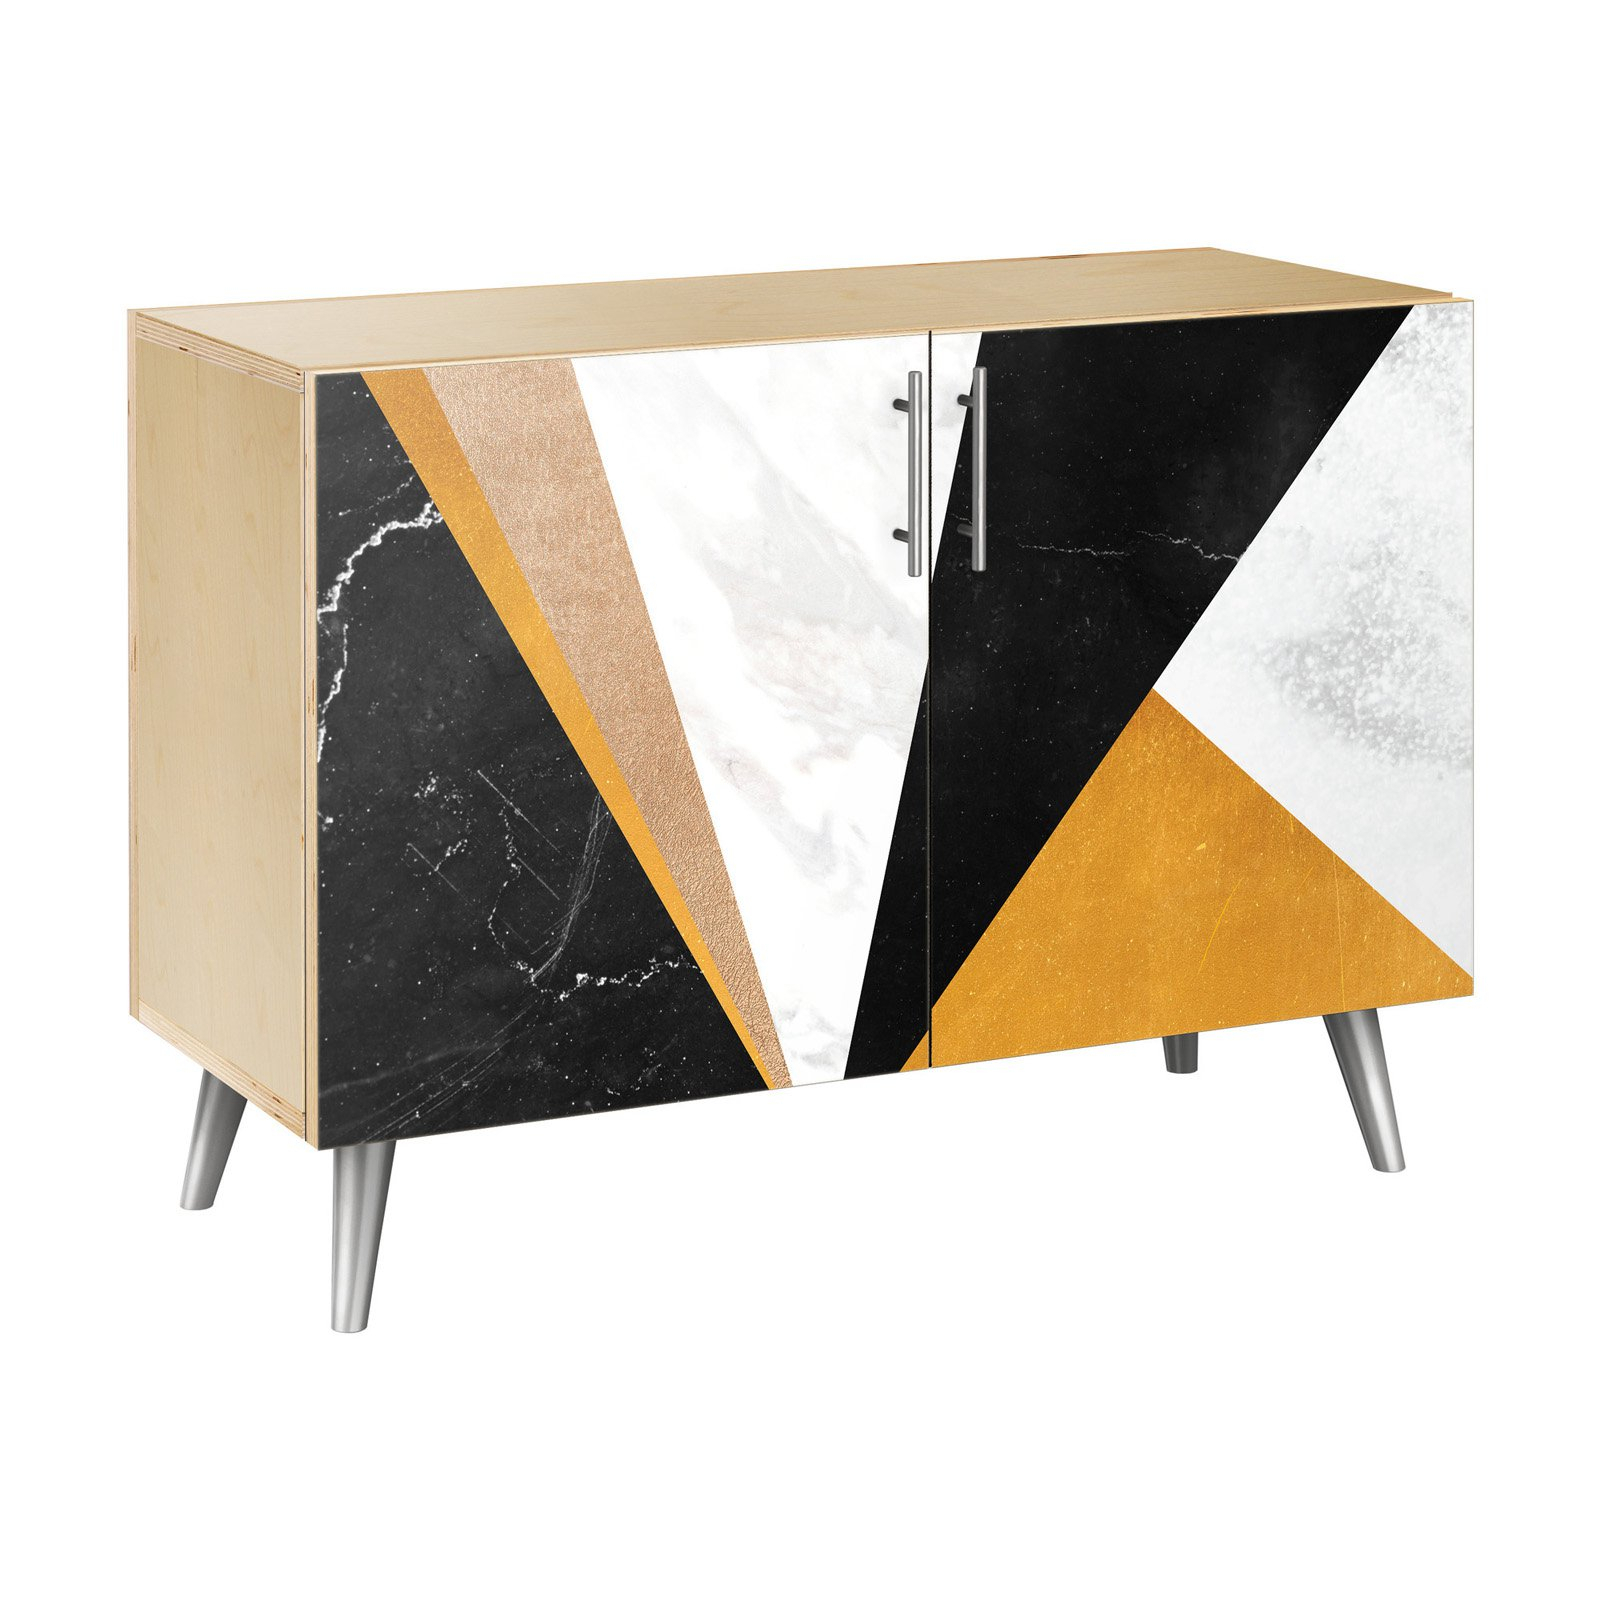 Nyekoncept Glamorous Geometry Flare Credenza | Products In pertaining to Line Geo Credenzas (Image 22 of 30)